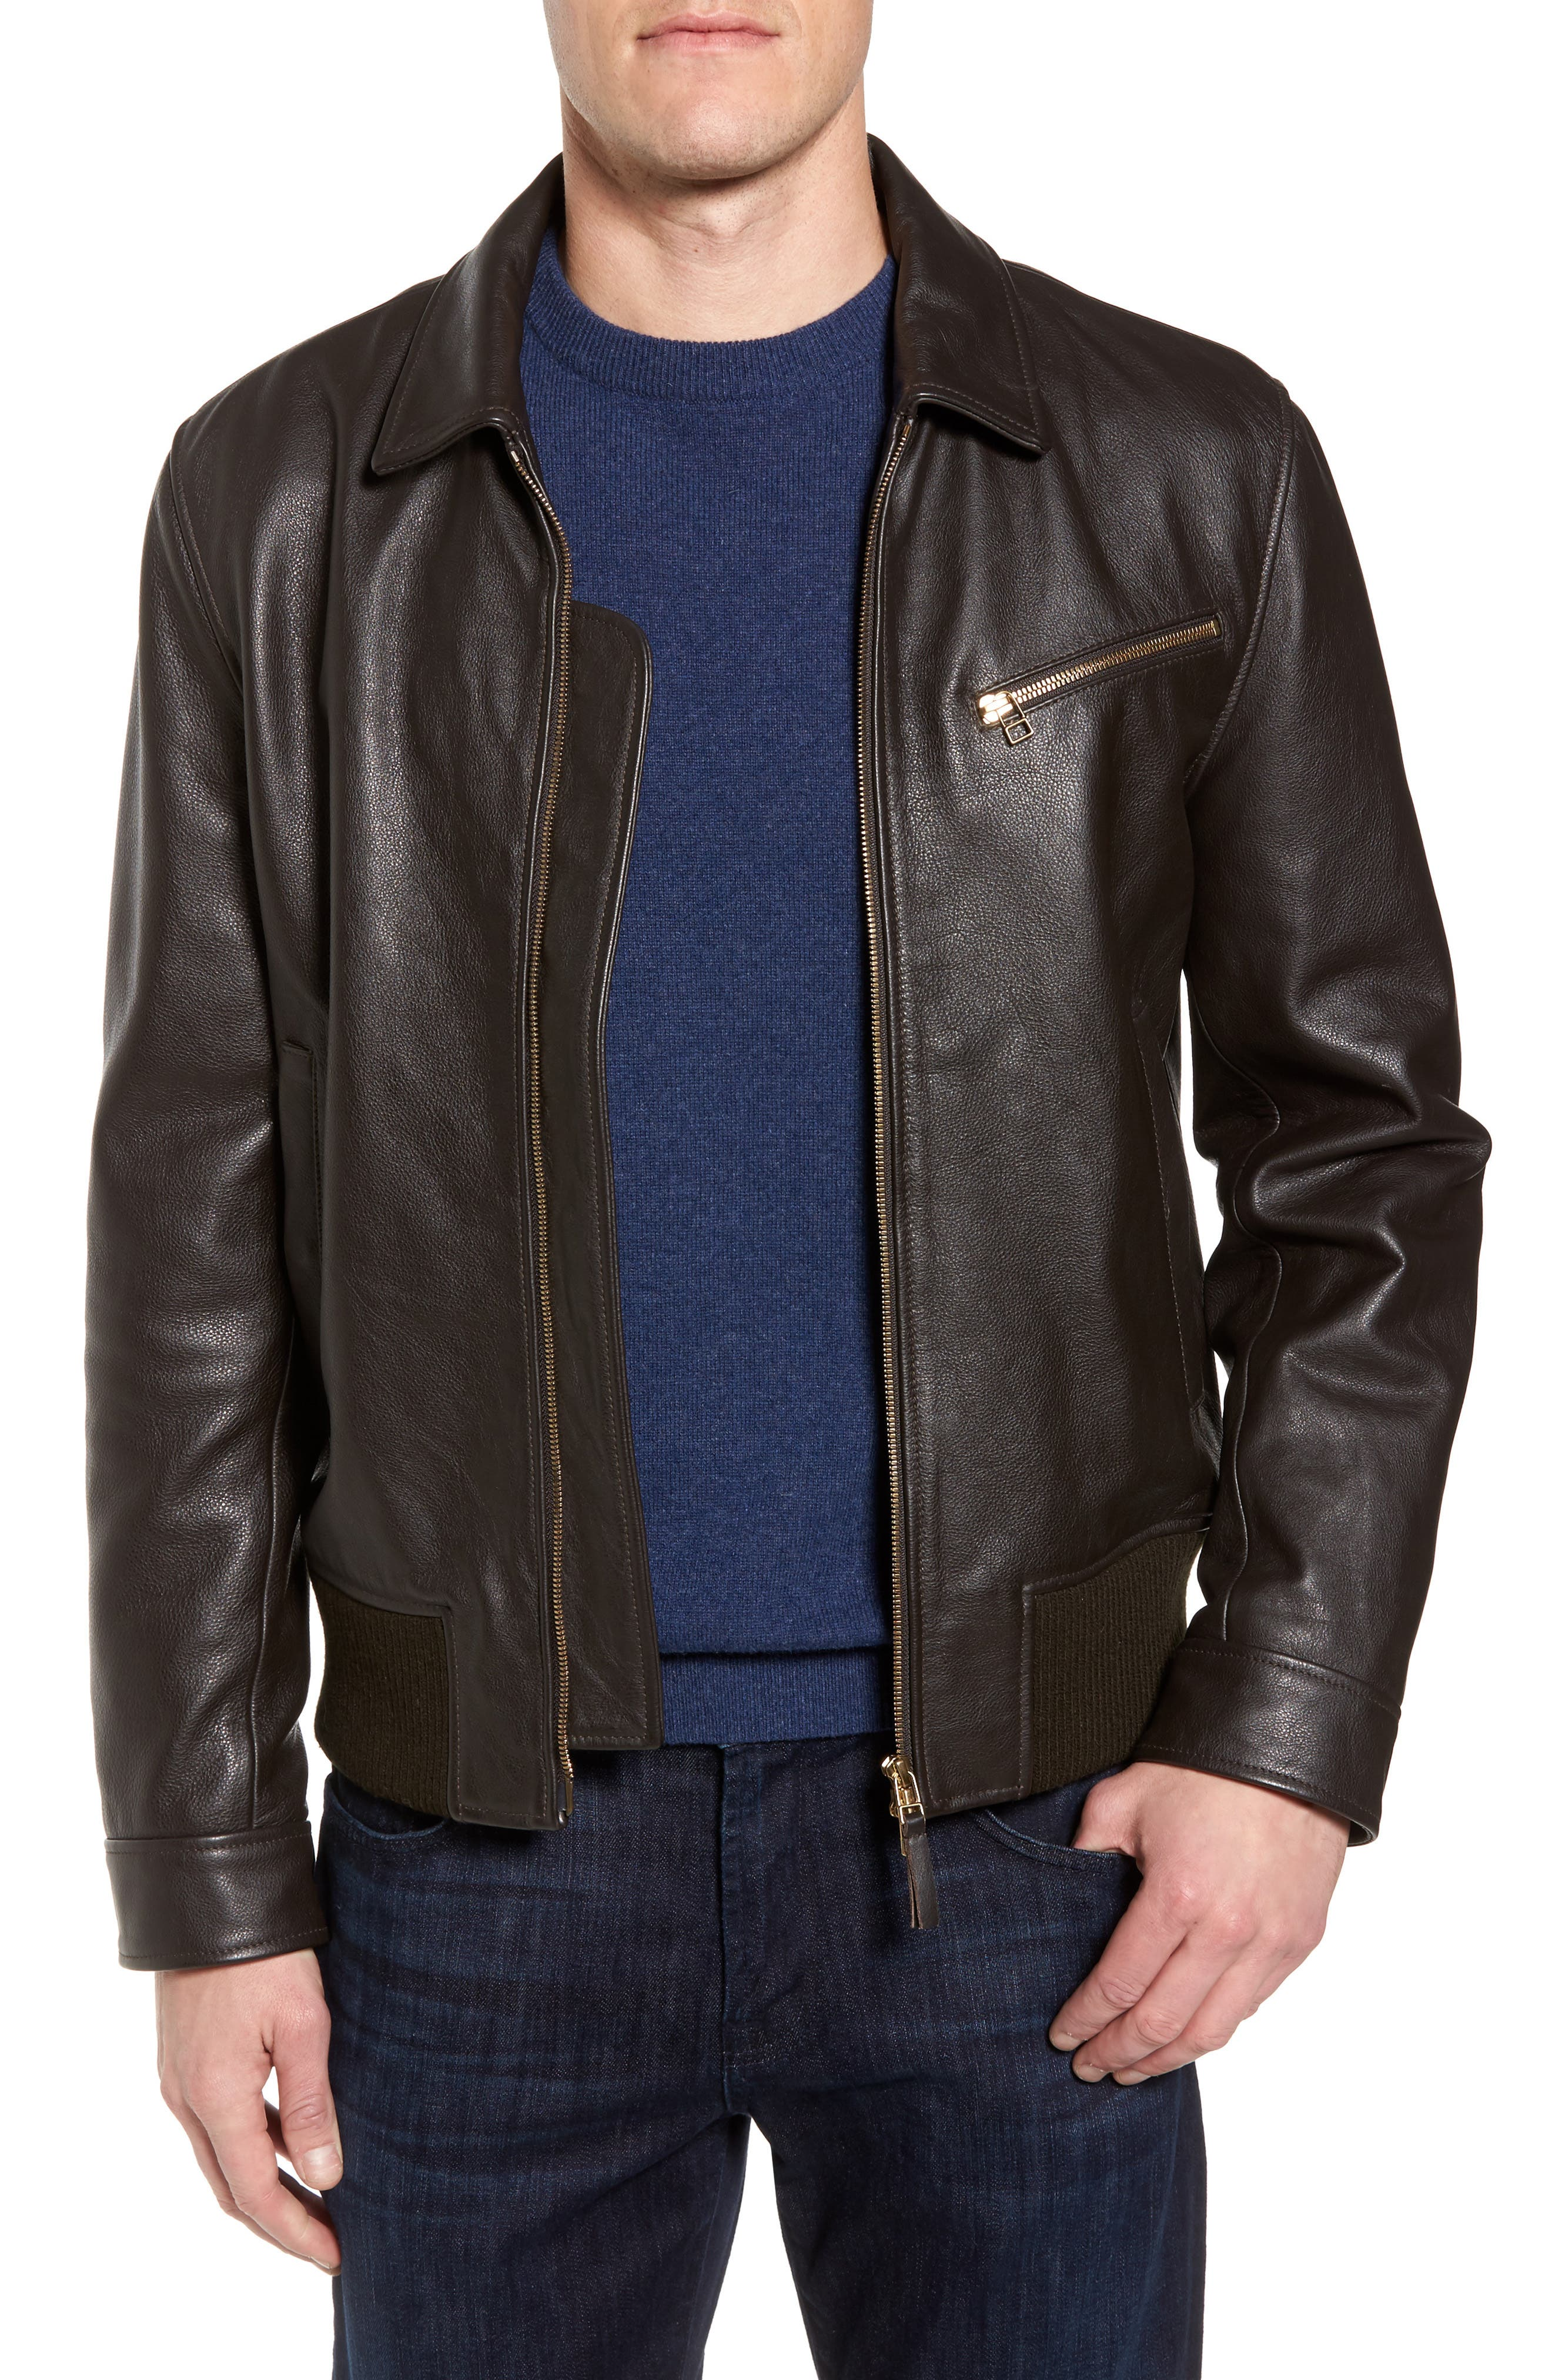 Year Round Leather Jacket,                         Main,                         color, Espresso Brown